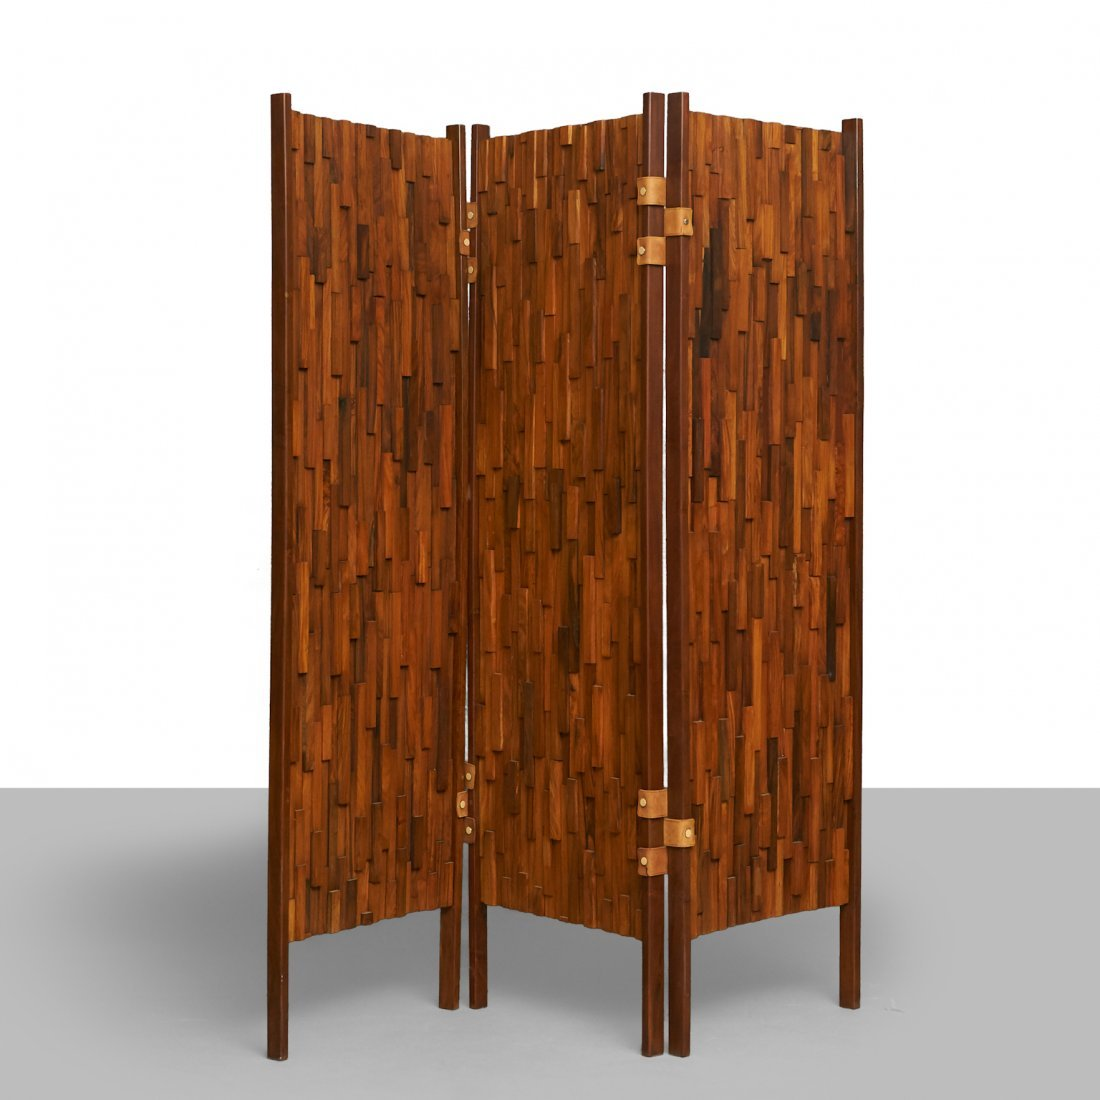 Percival Lafer Style Brazilian Rosewood 3-Panel Screens - 2